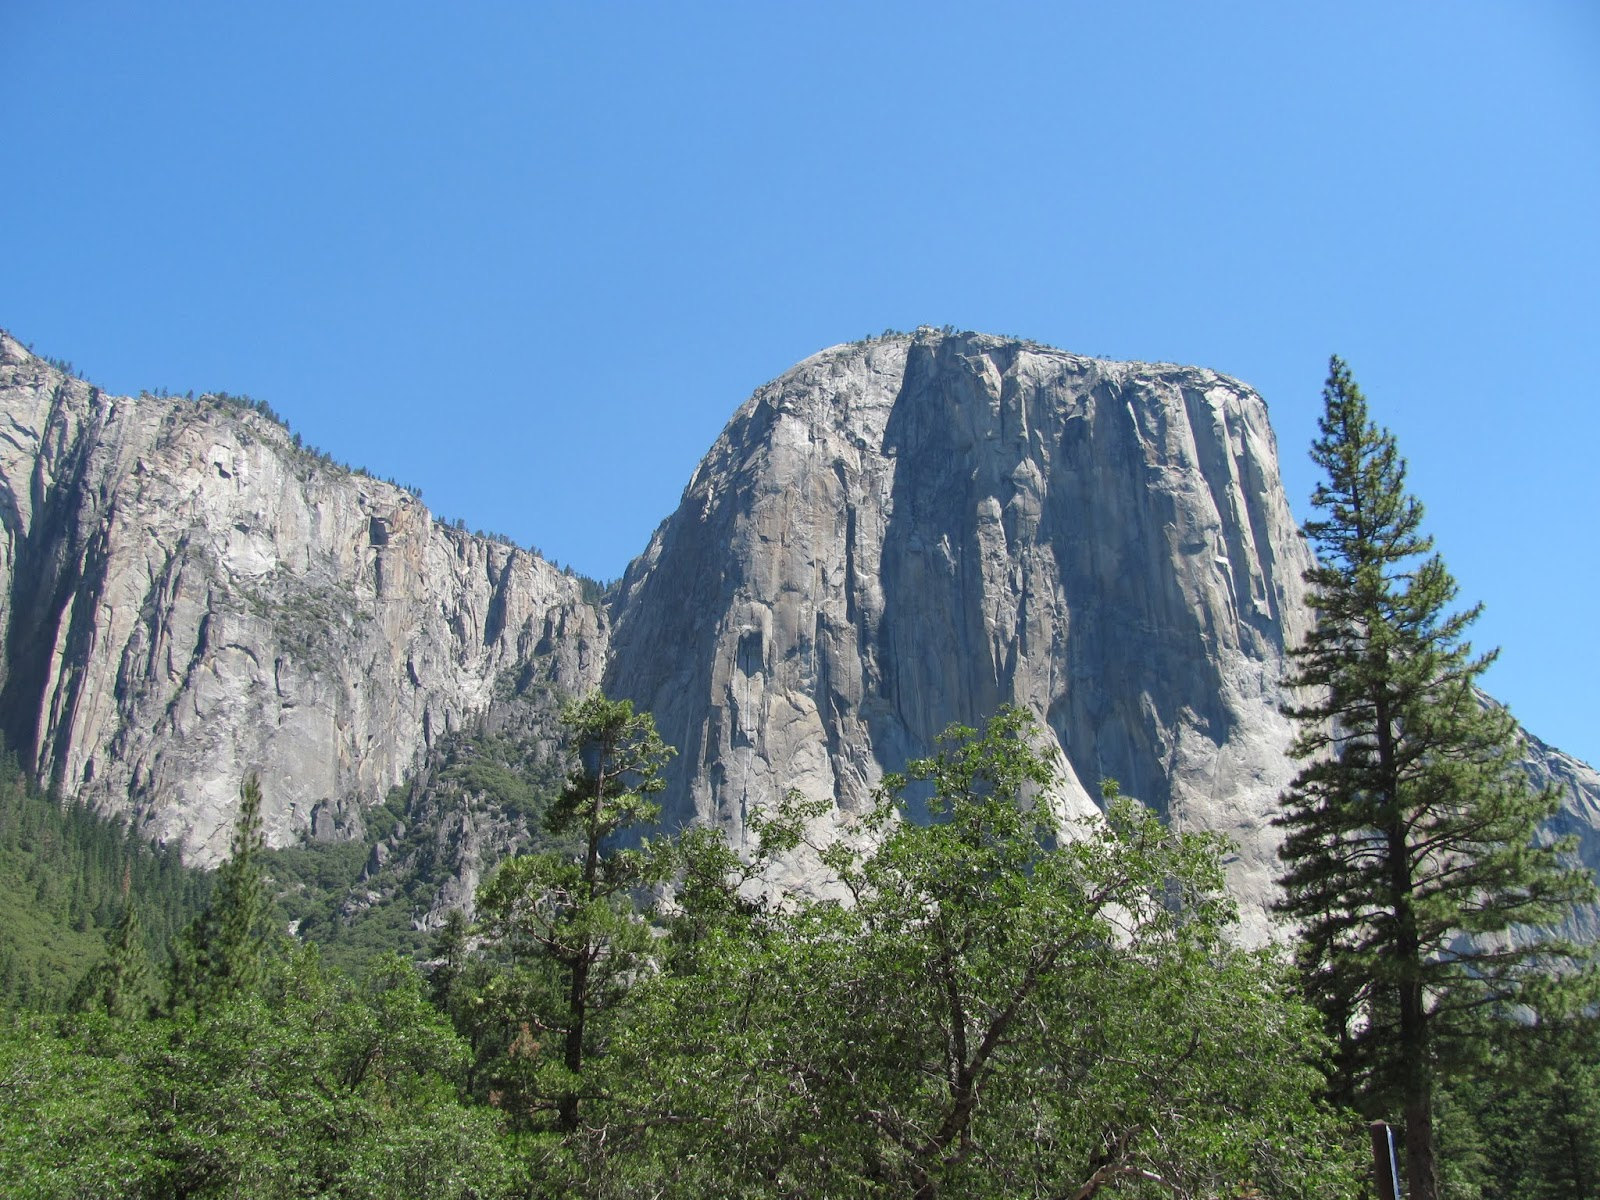 El Capitan, the granite monolith rises above the valley floor at Yosemite National Park, California